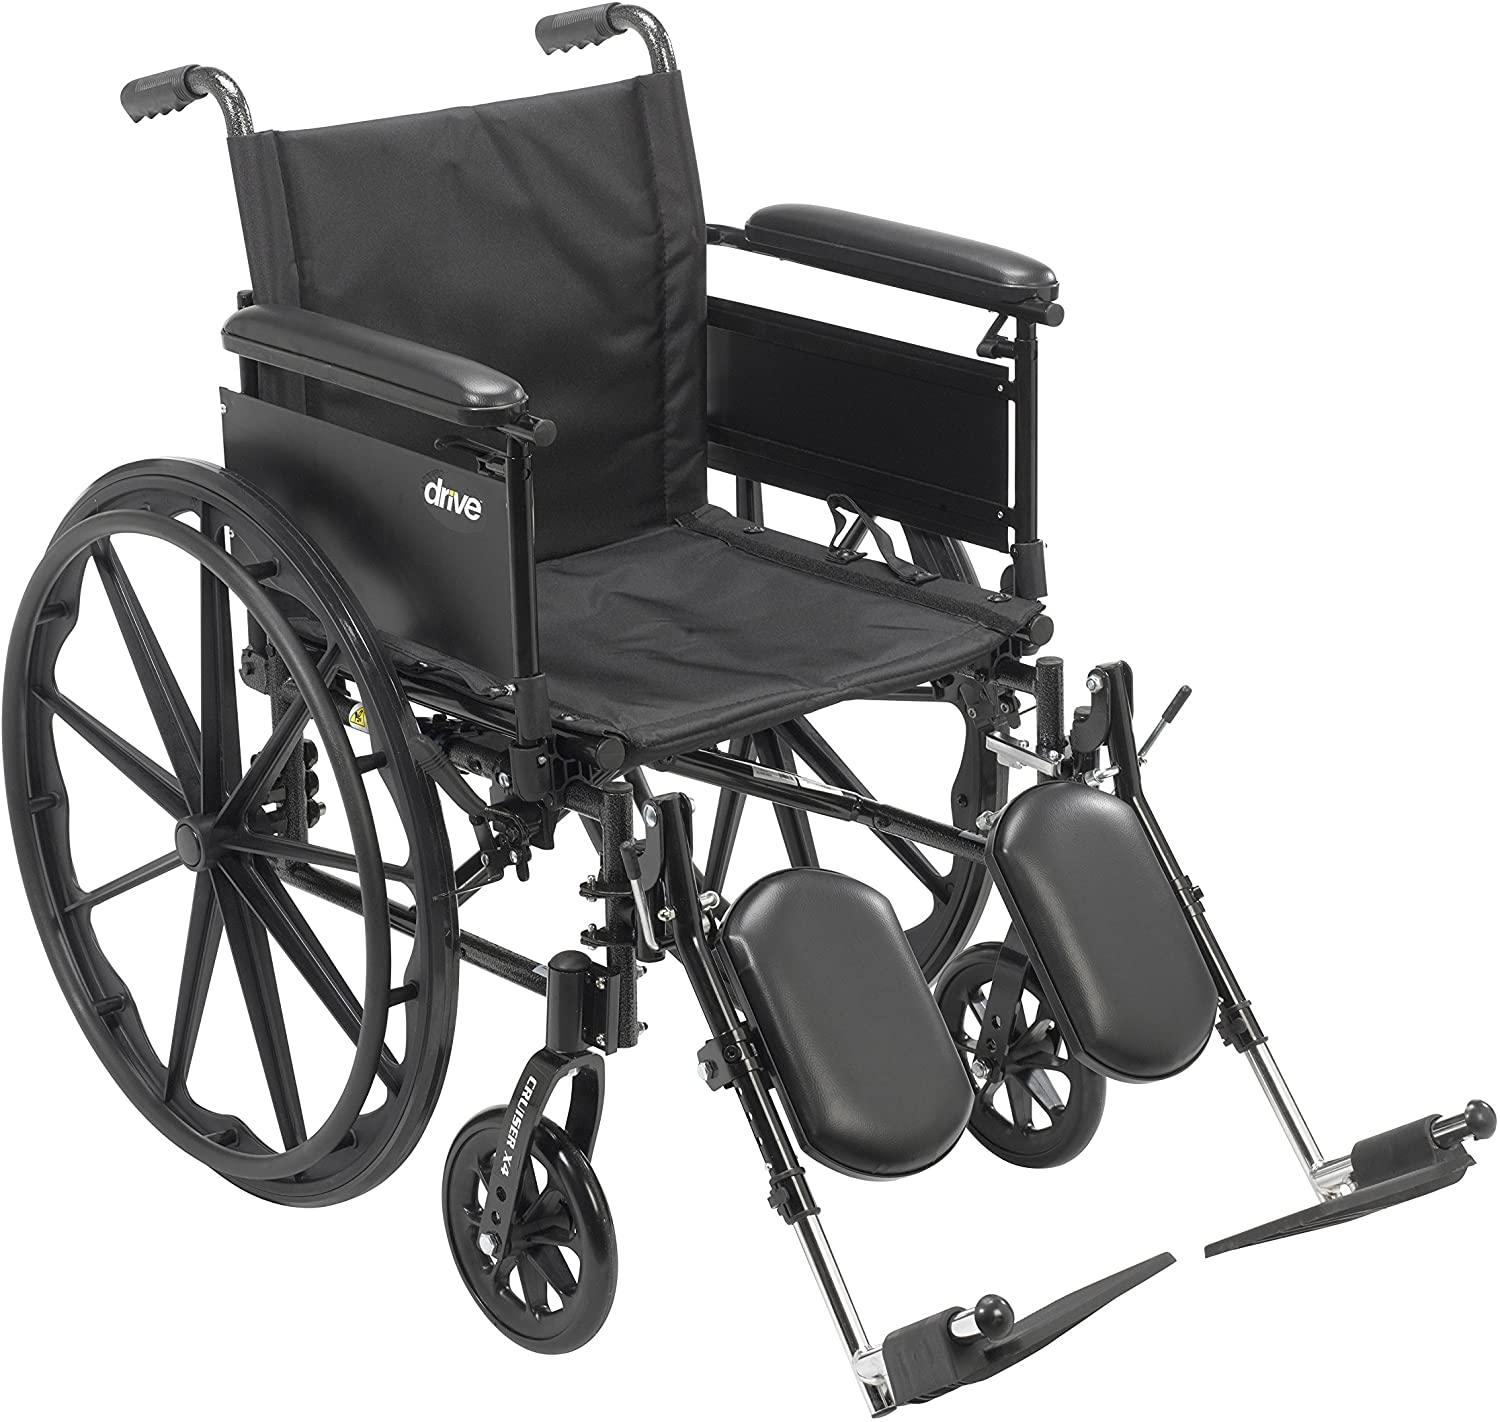 "Drive Medical Cruiser X4 Lightweight Dual Axle Wheelchair with Adjustable Detachable Arms, Full Arms, Elevating Leg Rests, 18"" Seat 91MNdOjdI4L"